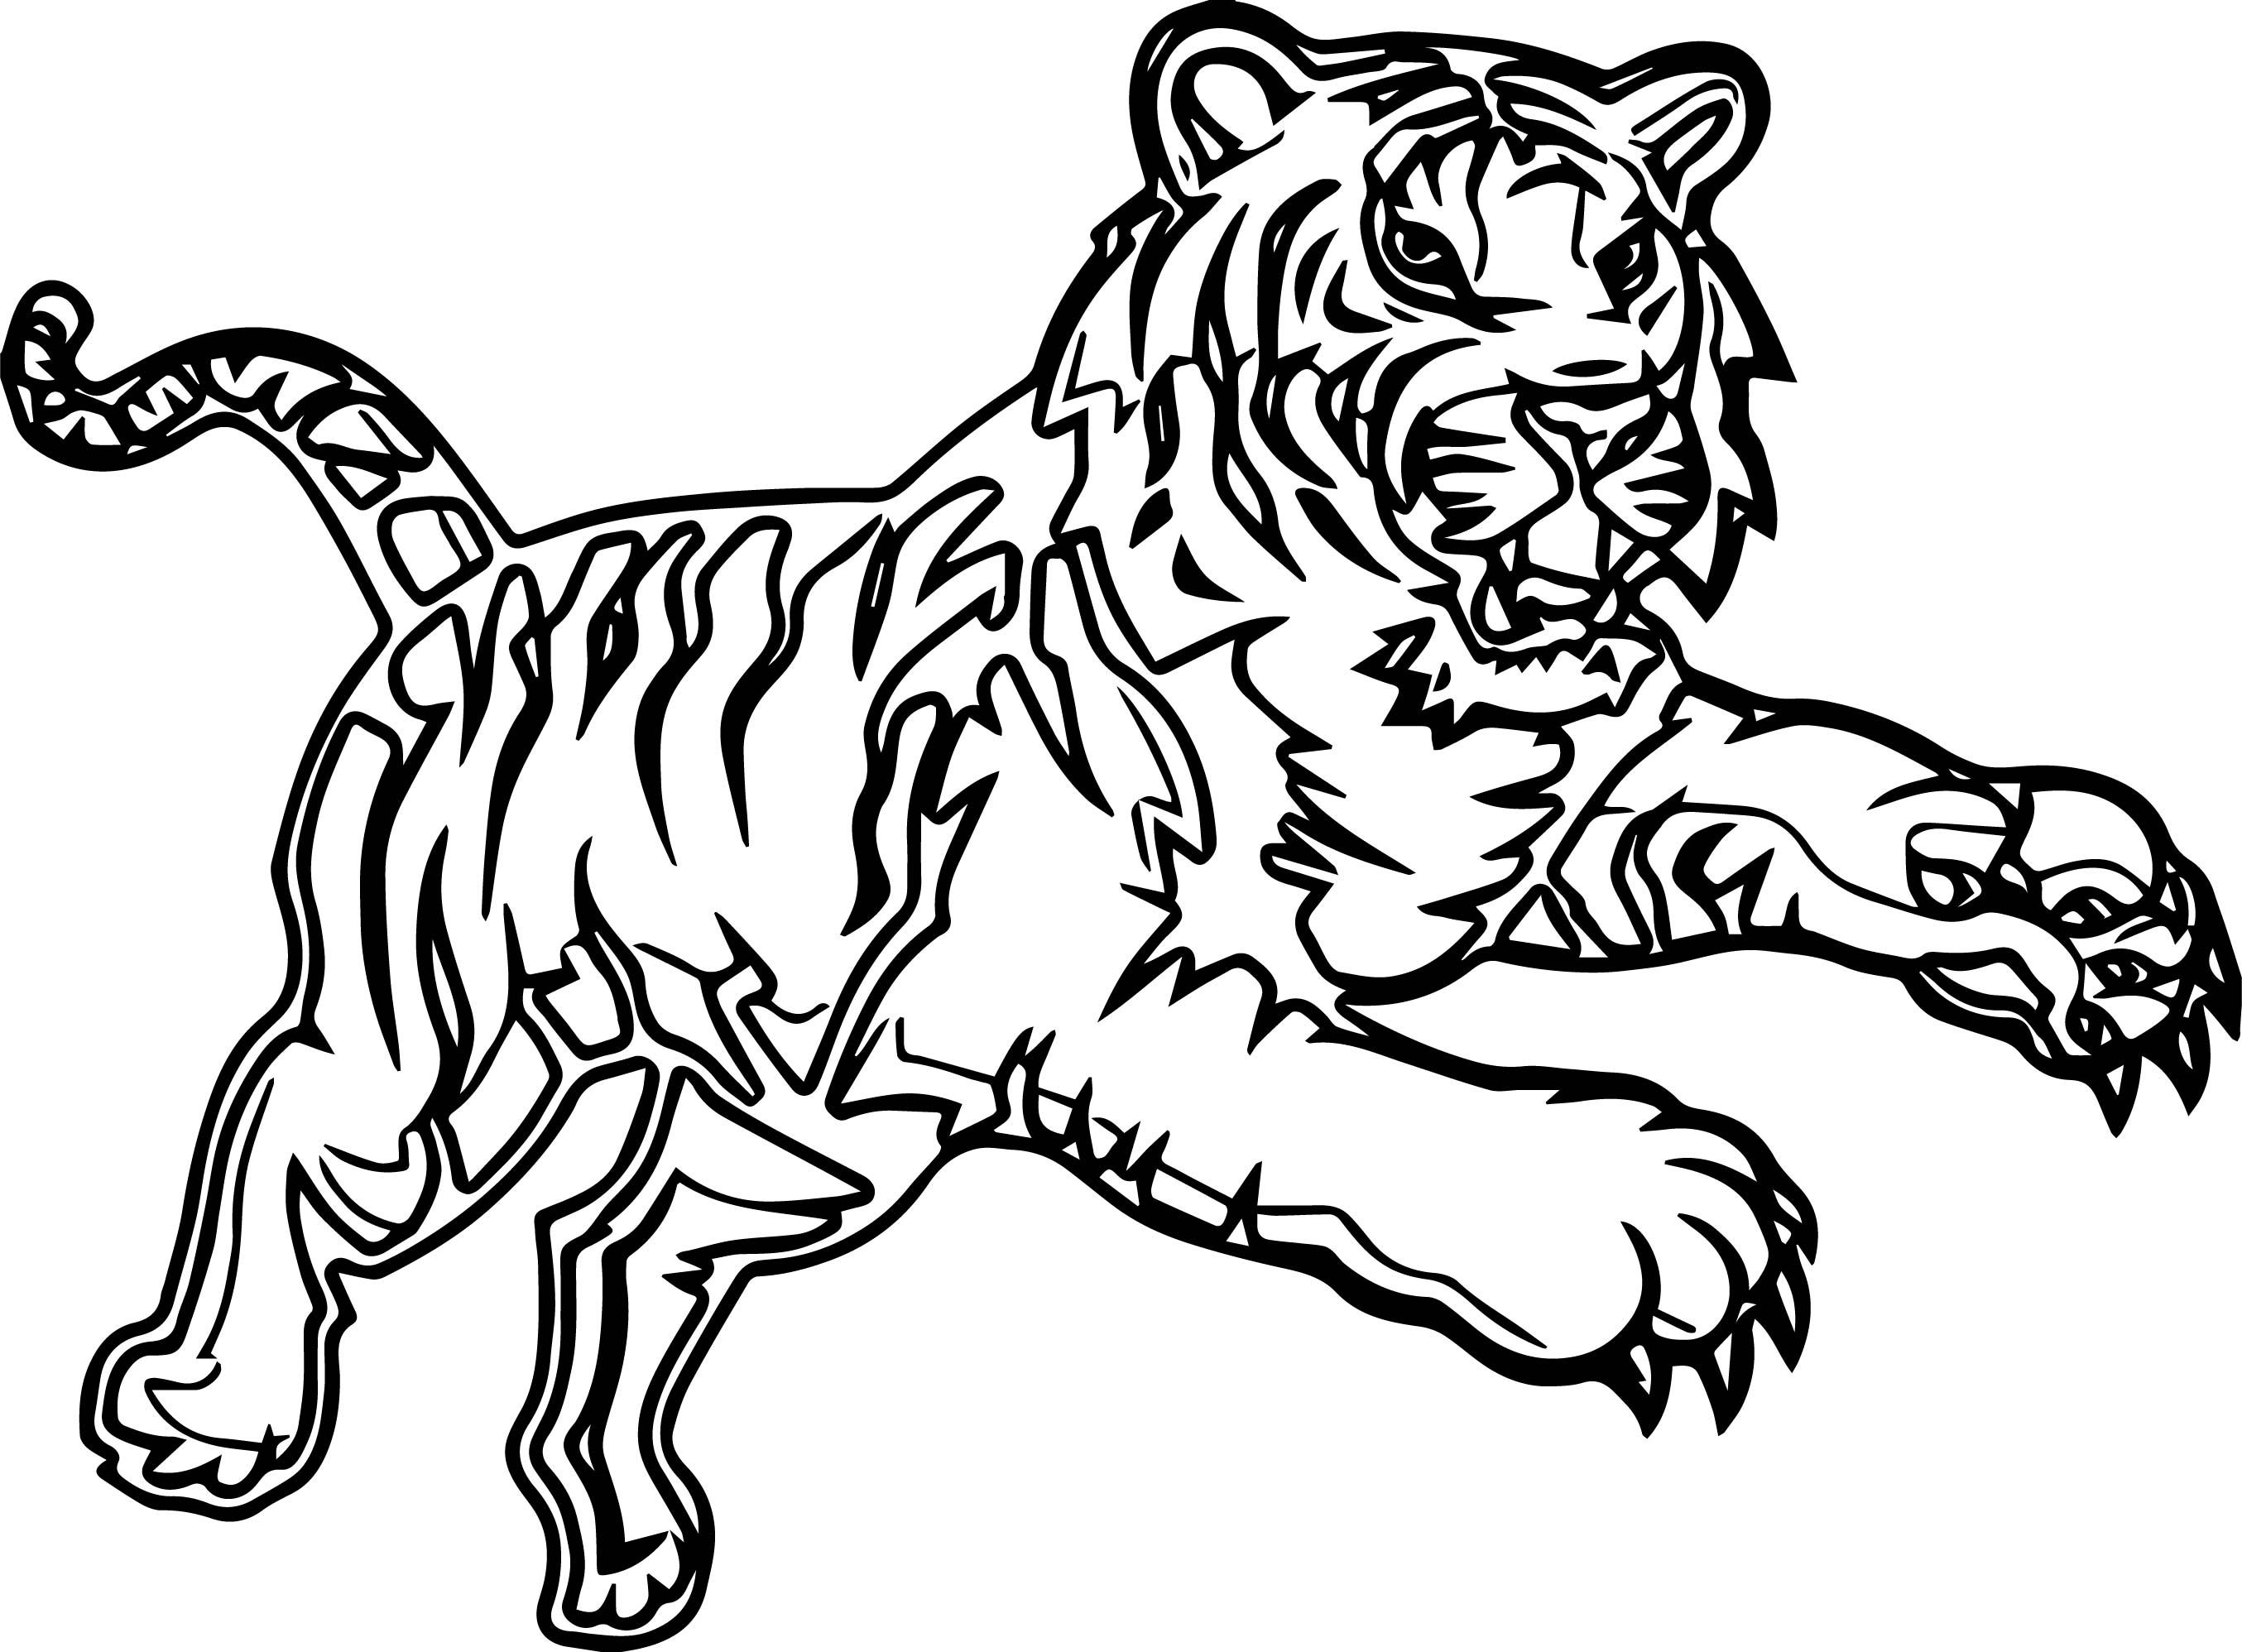 Awesome Attack Time Tiger Coloring Page Coloring Pages Coloring